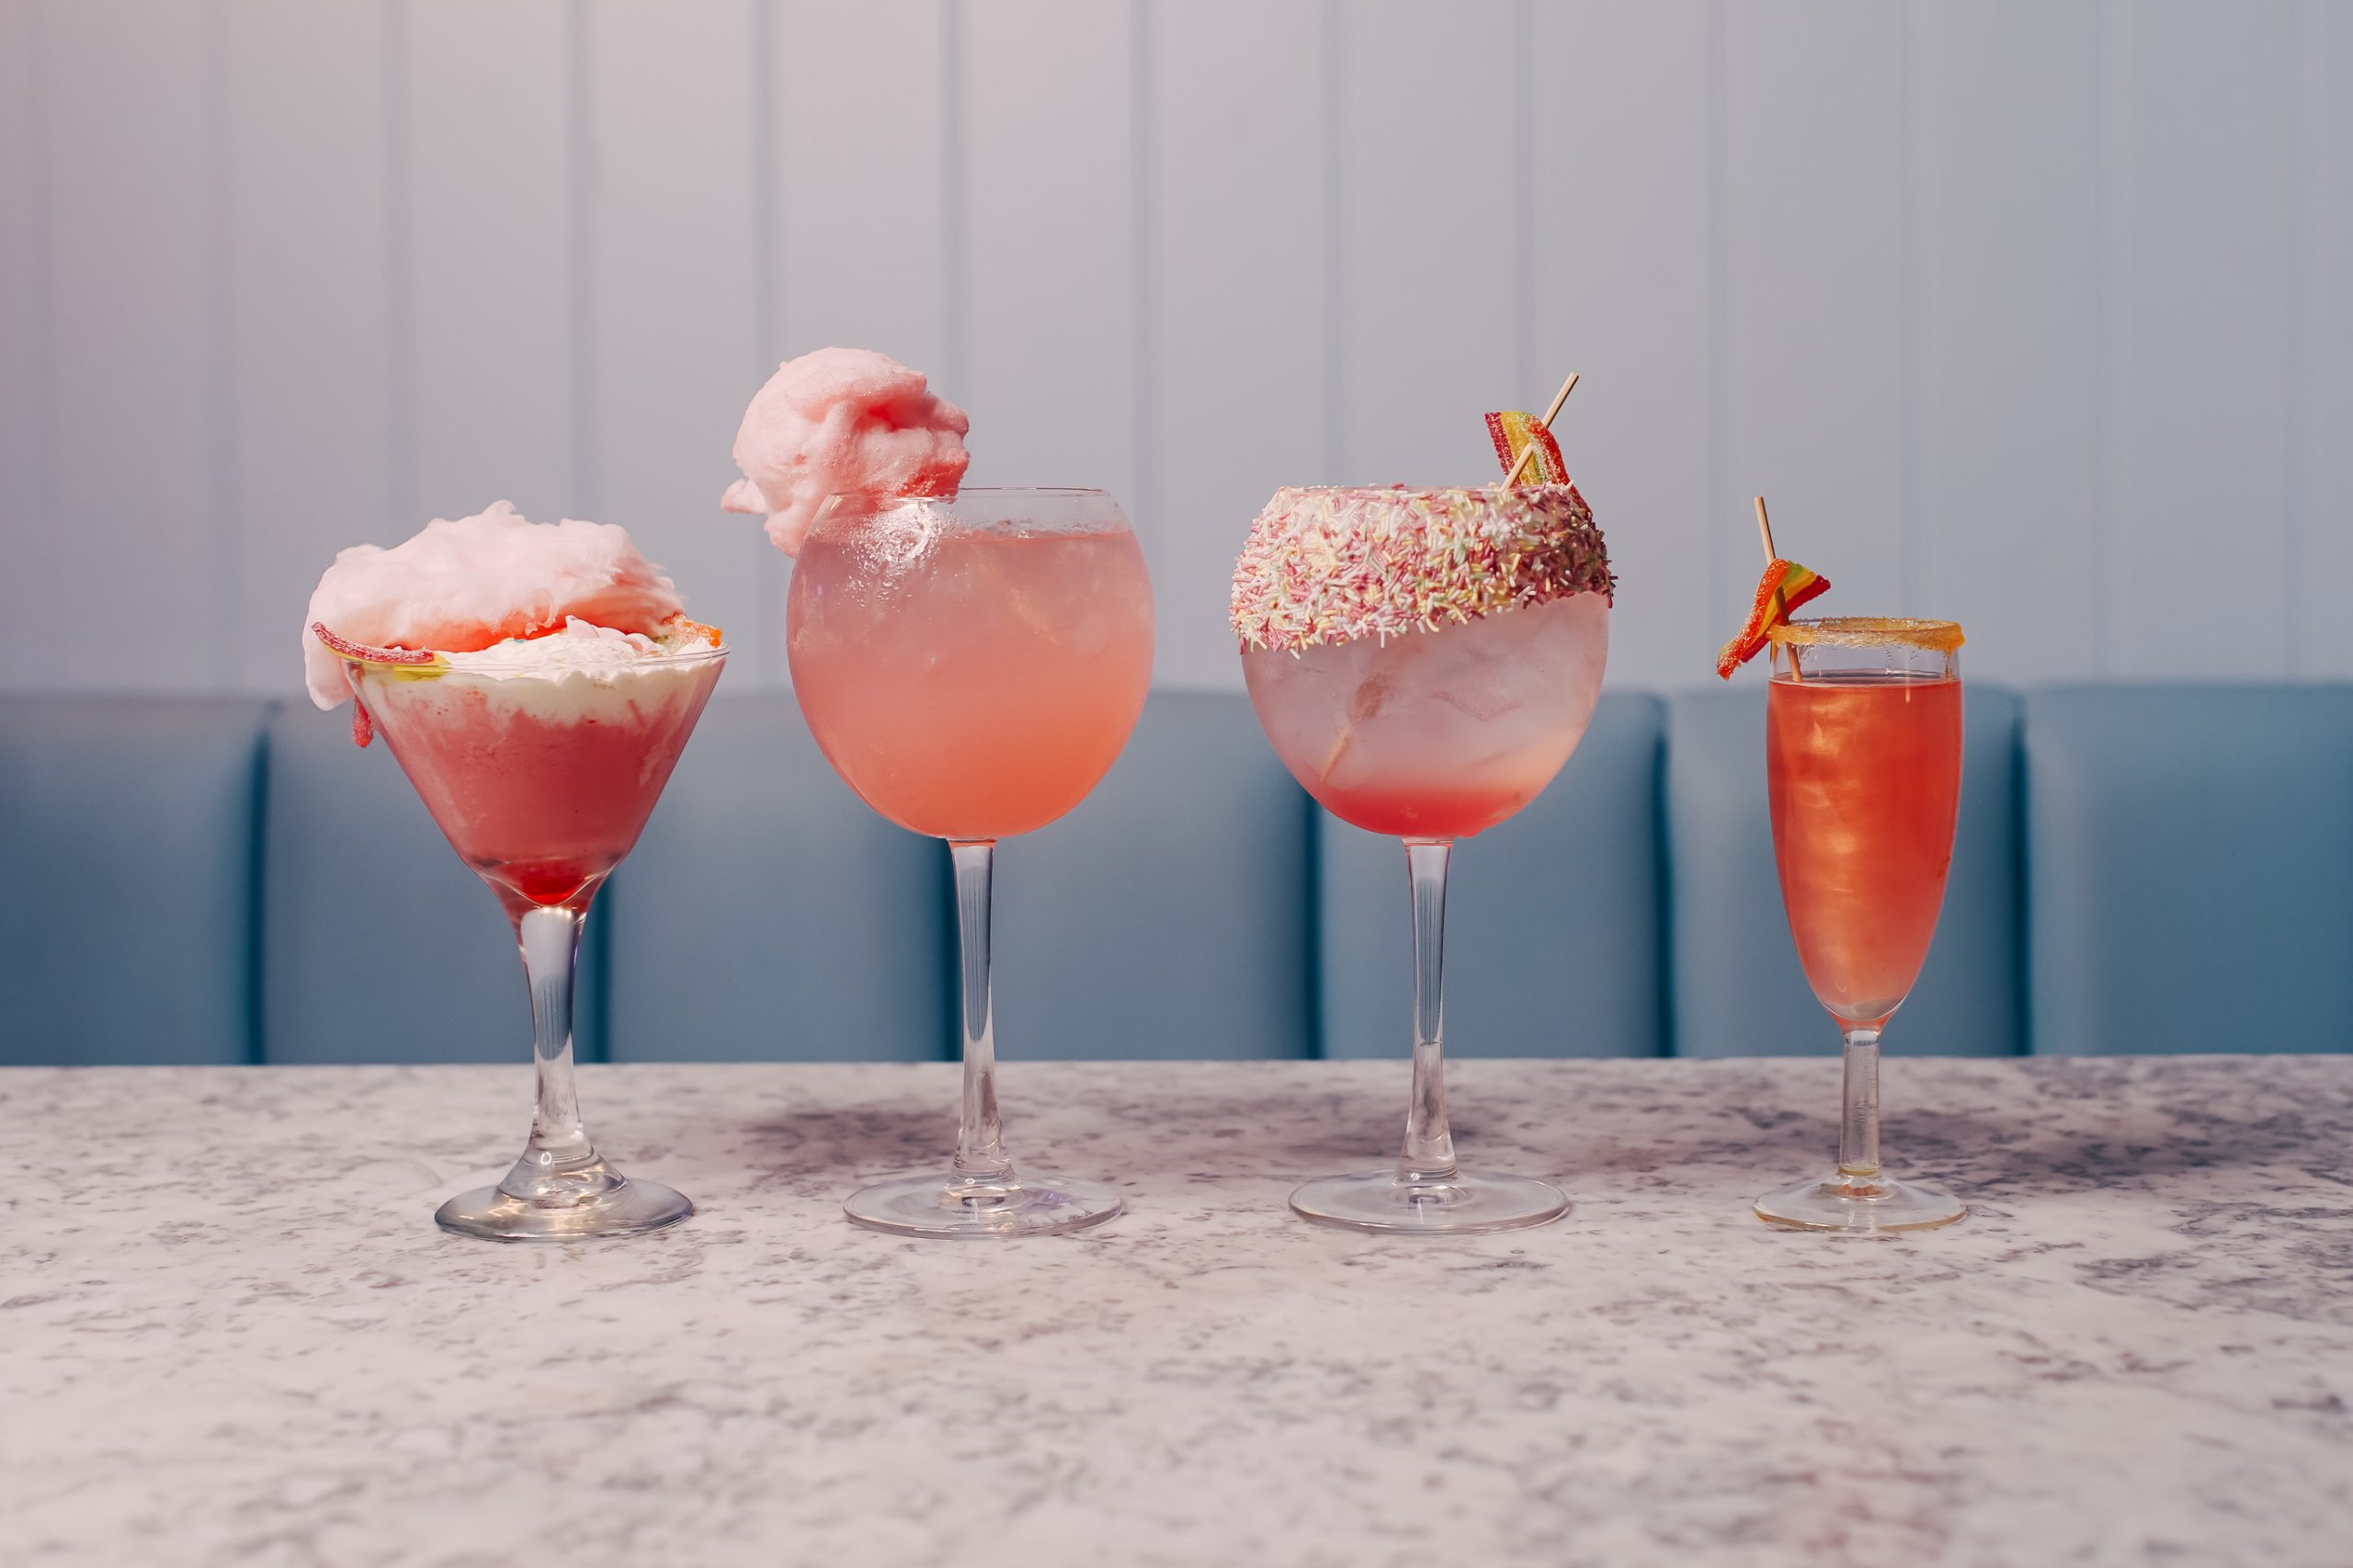 cocktail photography at Duo London